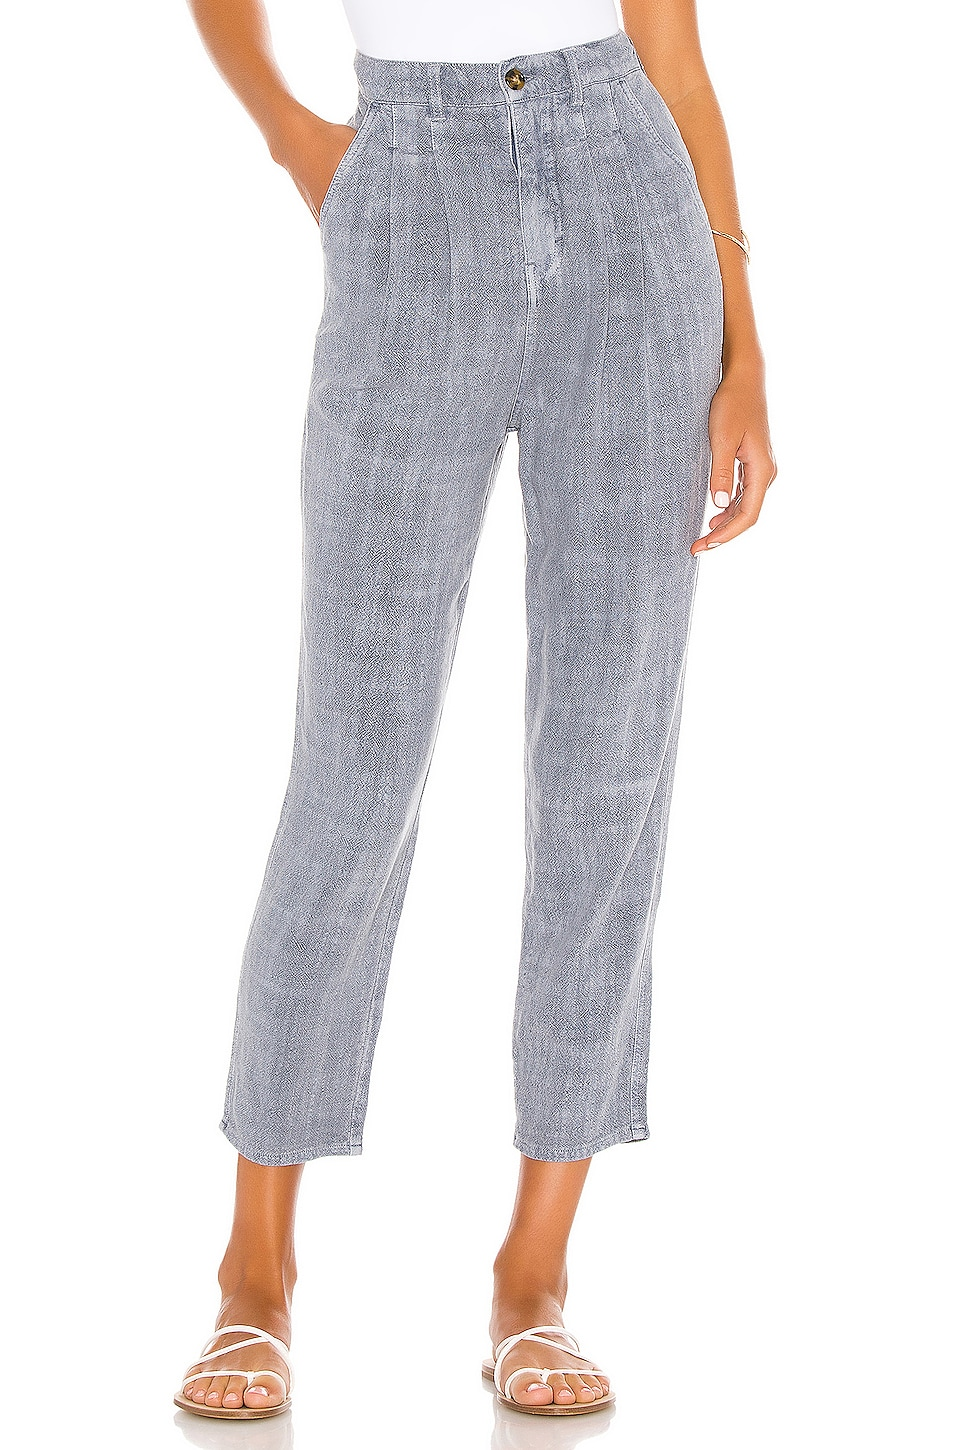 Faded Love Pant                     Free People 4